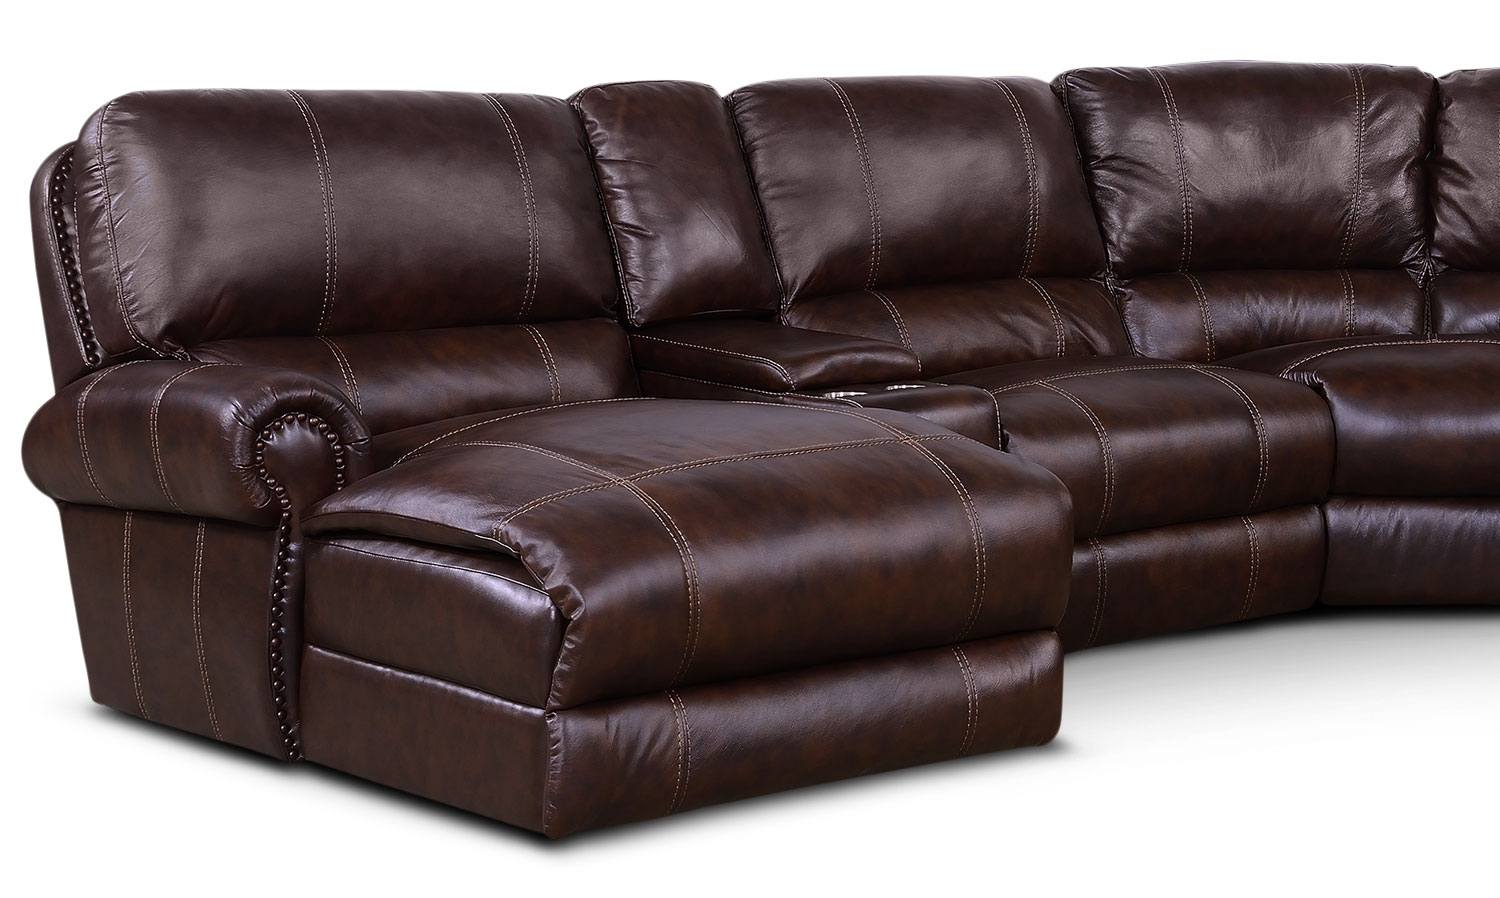 Dartmouth 6 Piece Power Reclining Sectional W/ Left Facing Chaise For Norfolk Chocolate 6 Piece Sectionals (Image 9 of 25)